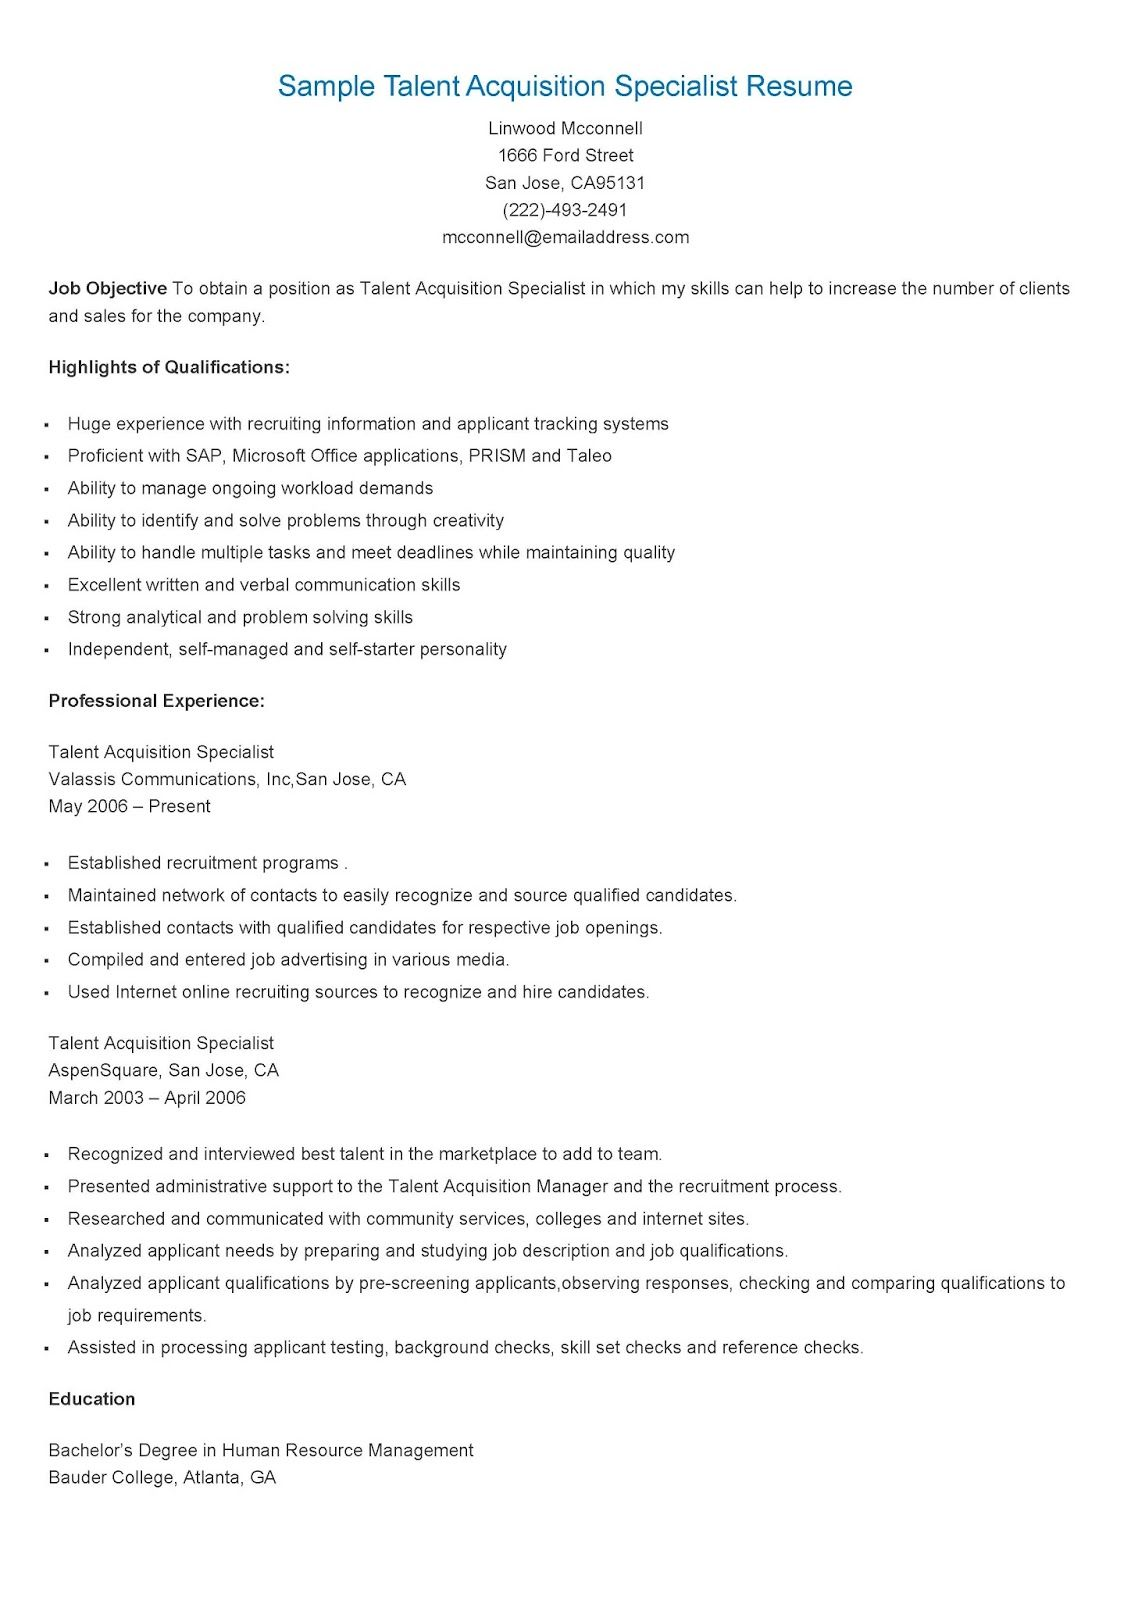 sample talent acquisition specialist resume